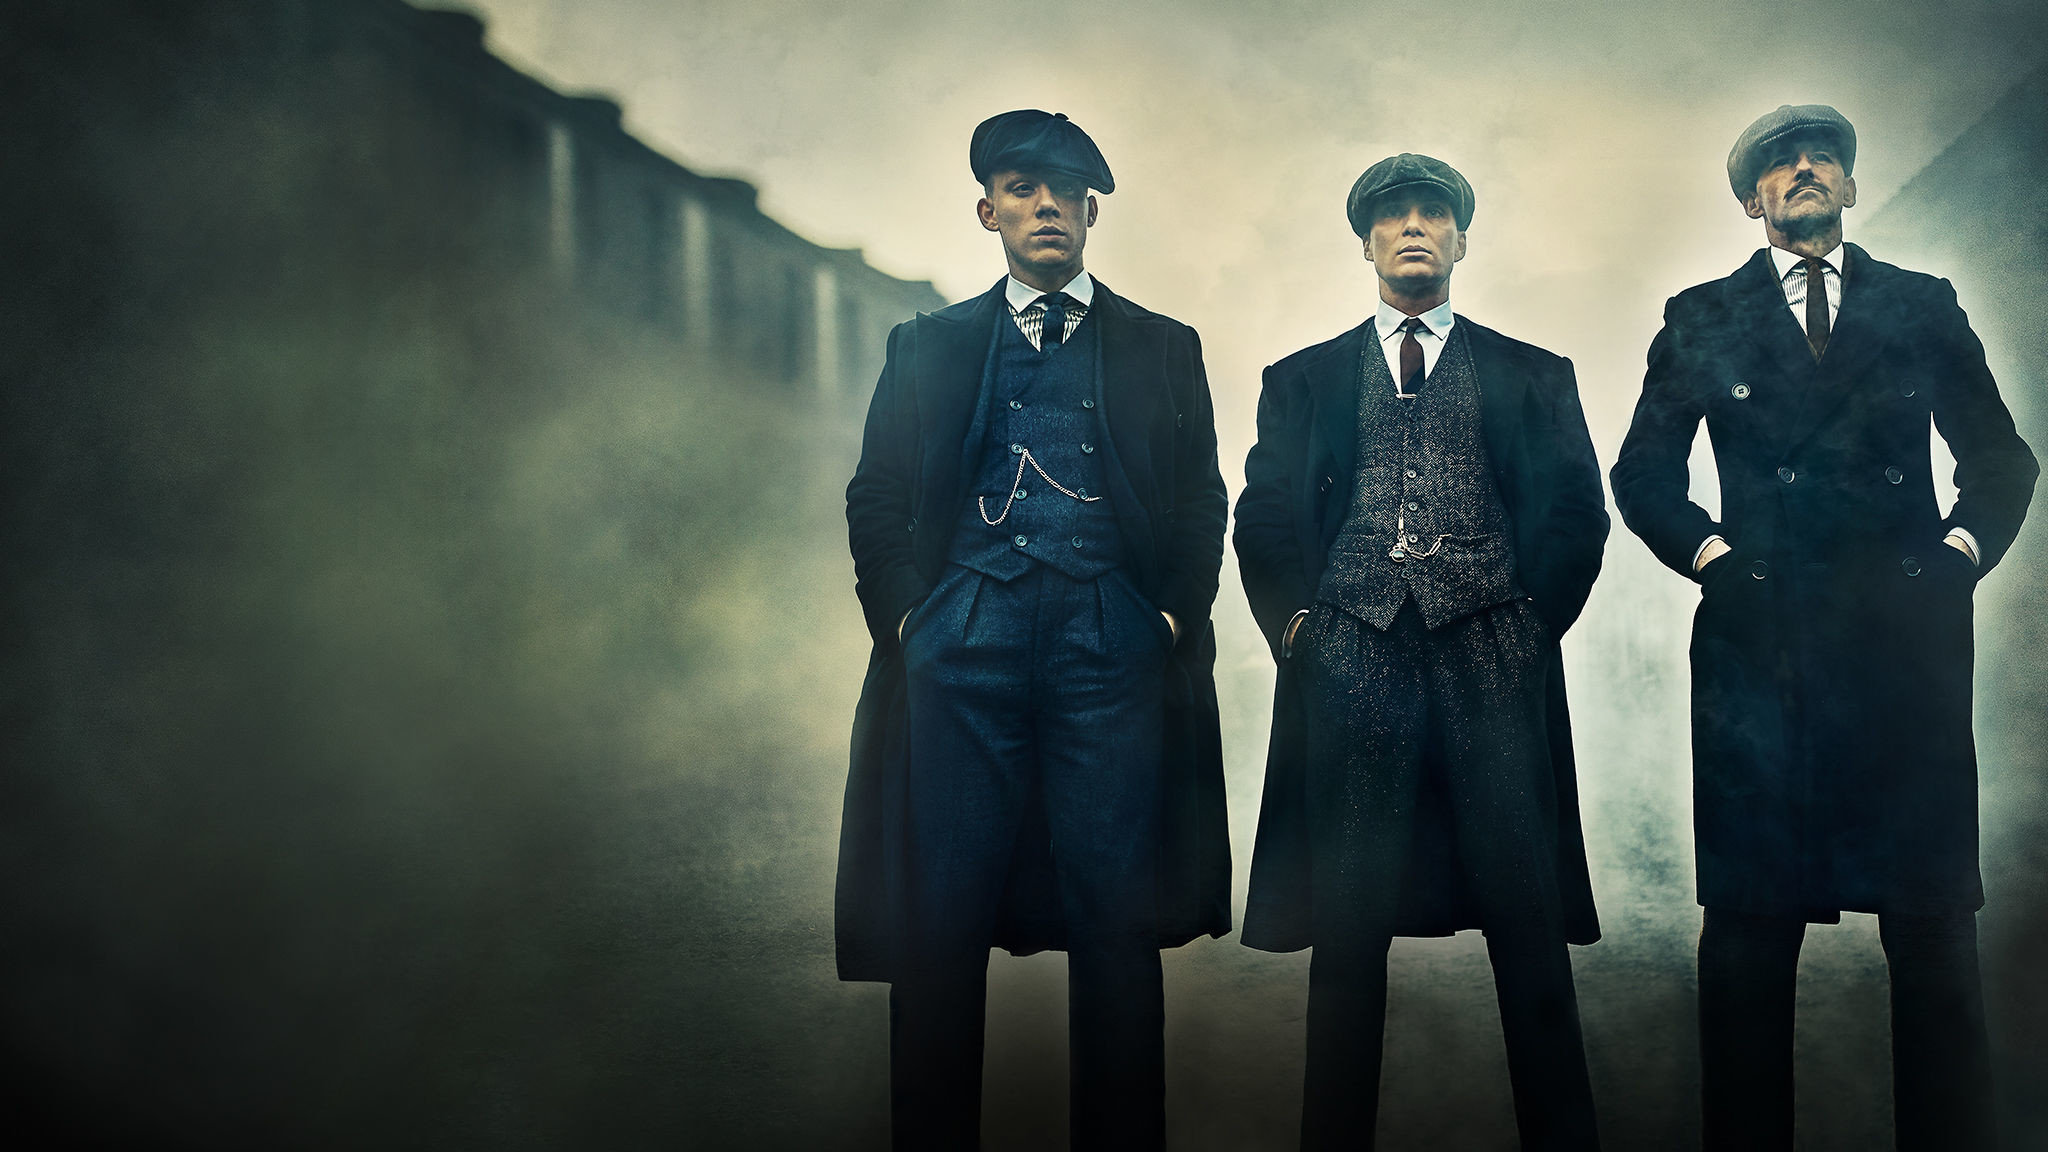 peaky blinders wallpapers 76 images